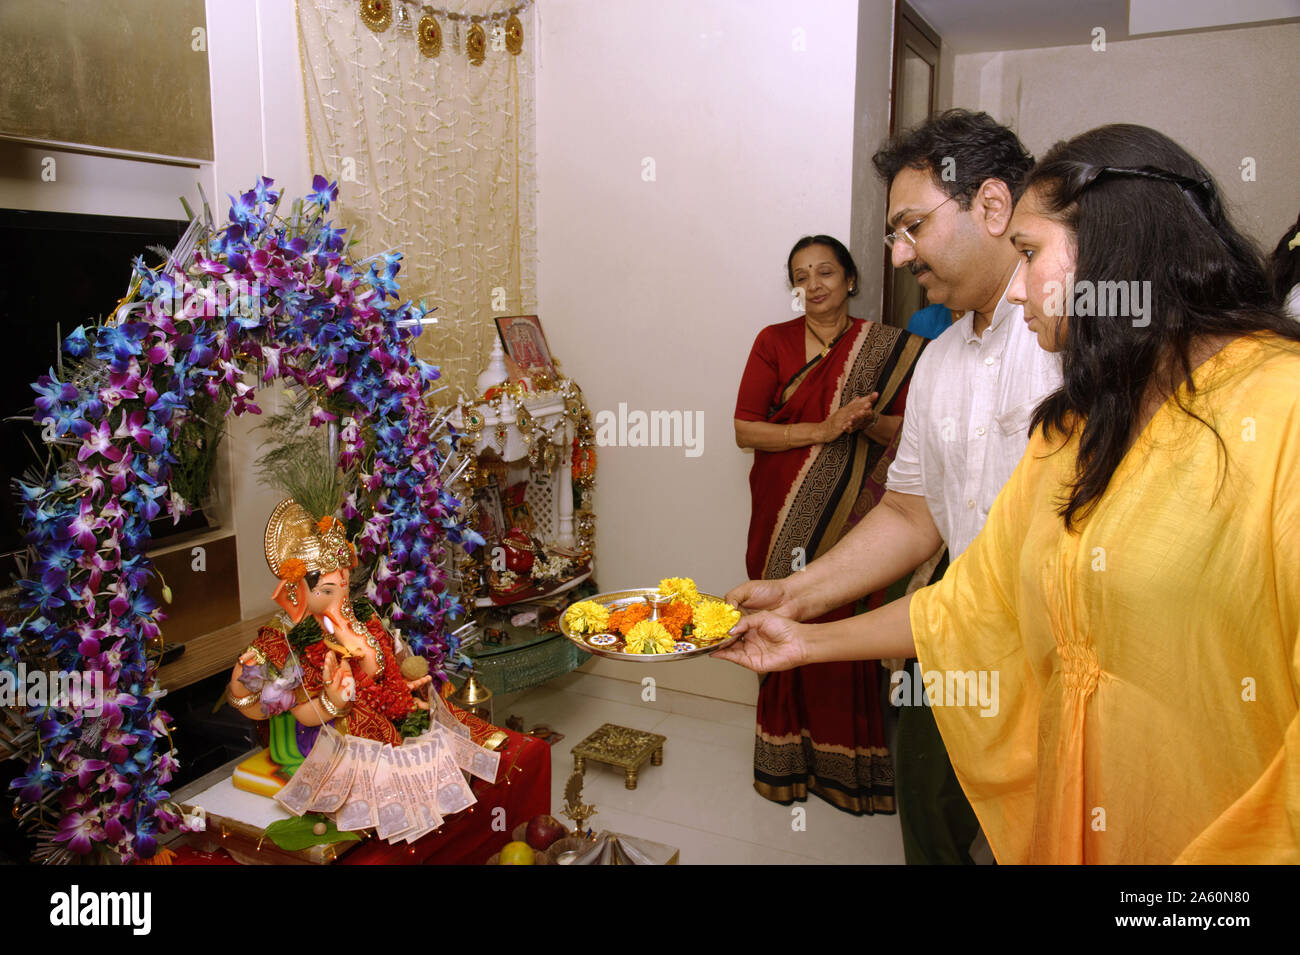 Mumbai, Maharashtra, India, Southeast Asia : Ganpati festival; Idol of Lord Ganesh Pooja (Puja) Performing by Devotees; family before immersion. Stock Photo